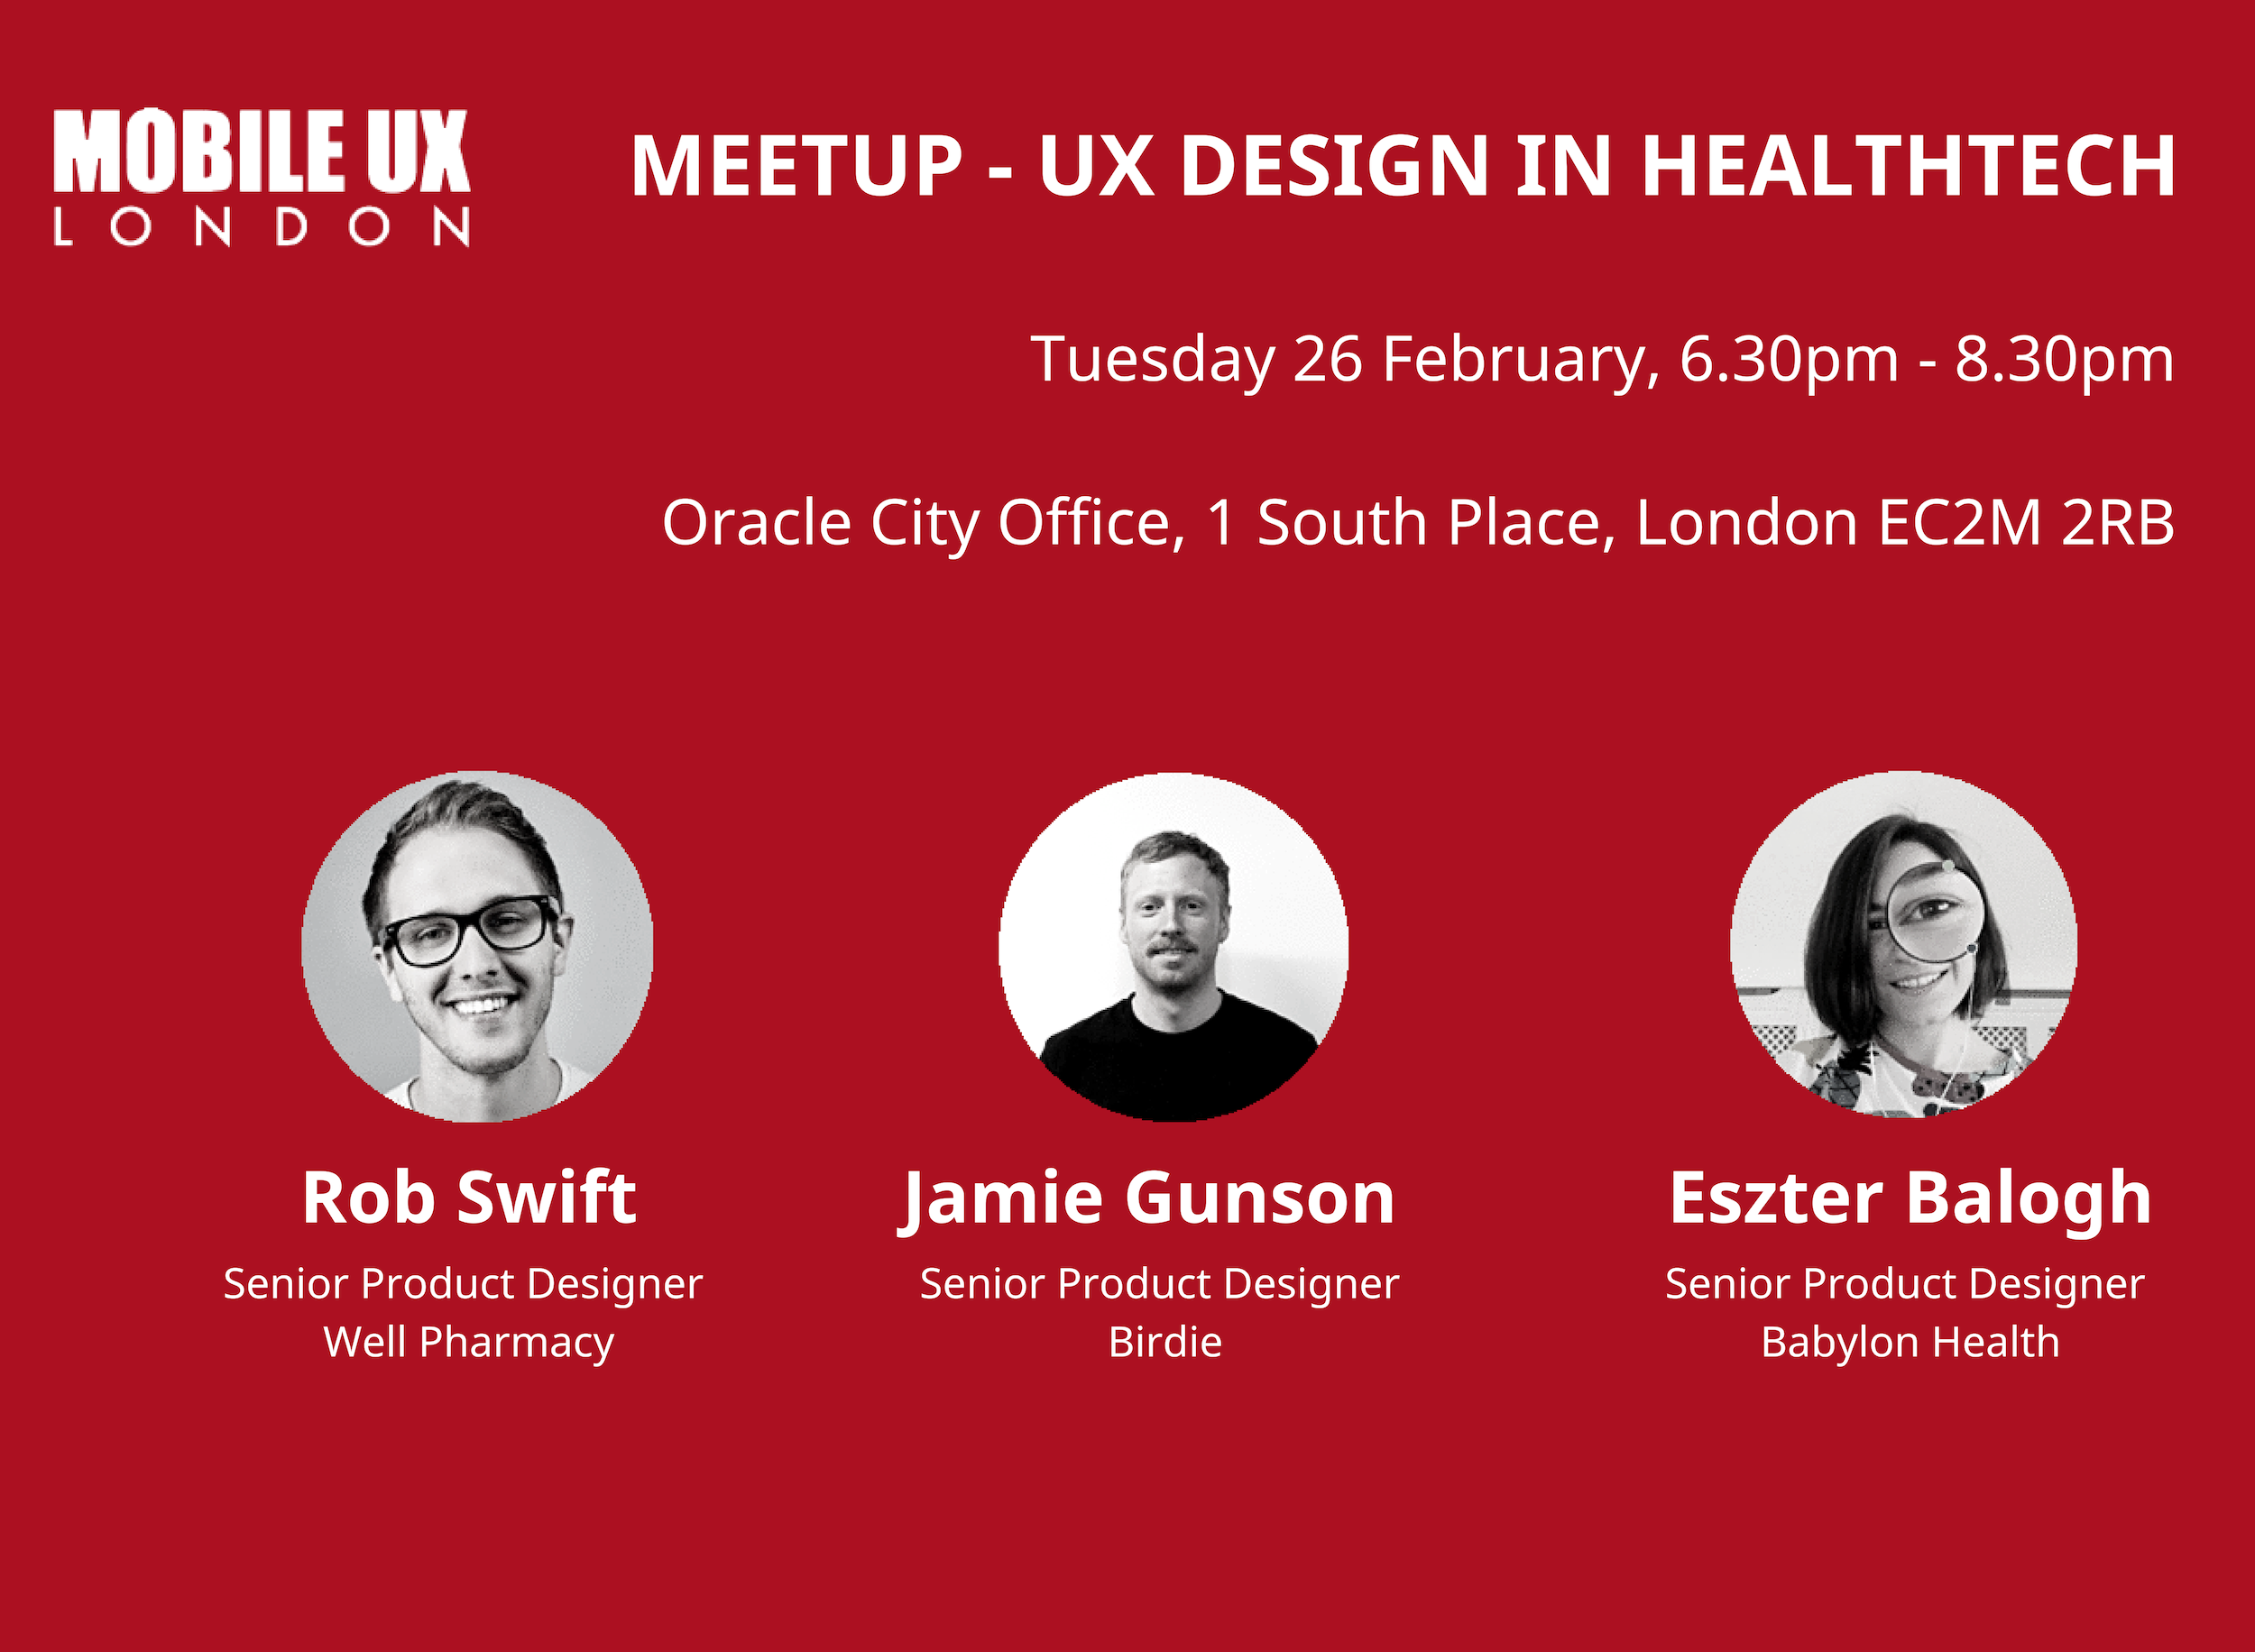 February meet up UX Design in HealthTech